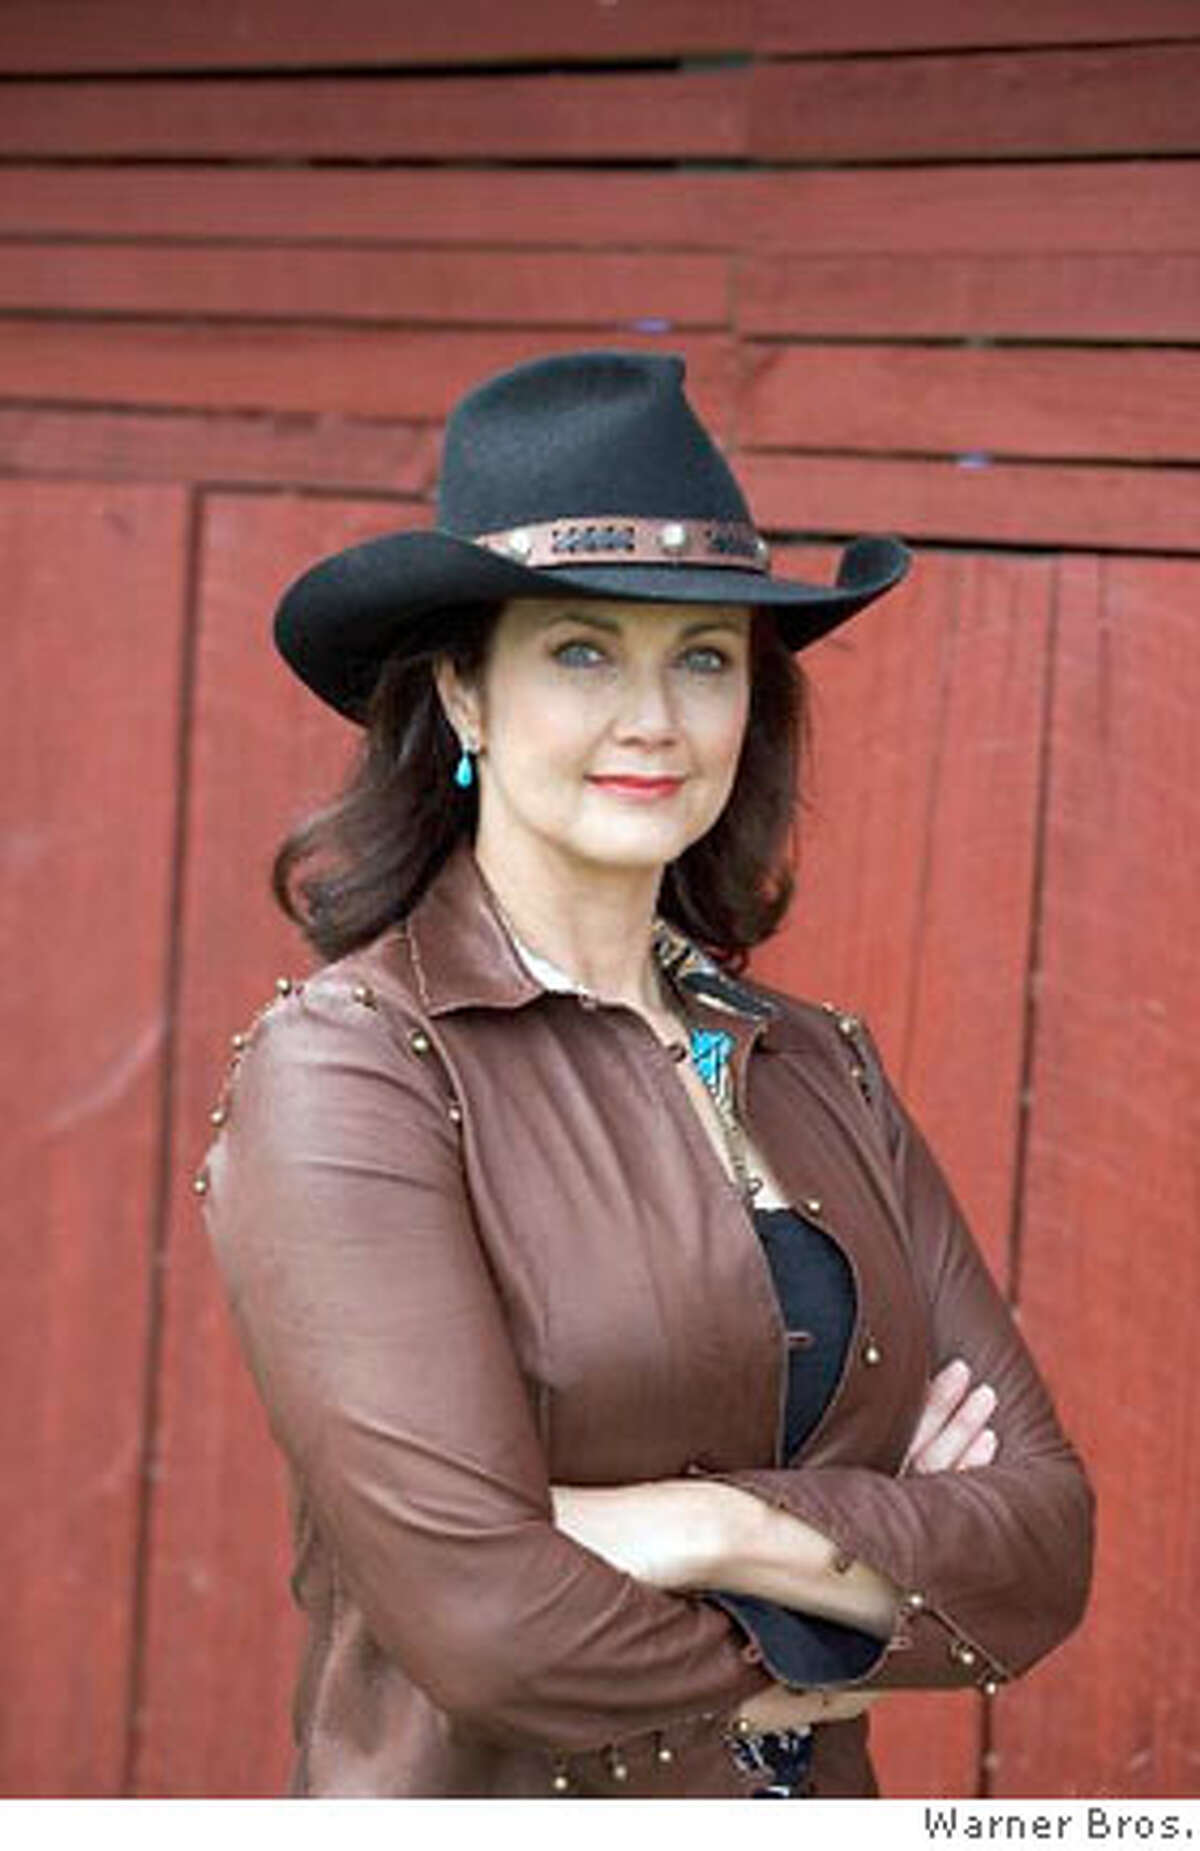 LYNDA CARTER as Pauline in Warner Bros. Pictures' and Village Roadshow Pictures' action comedy